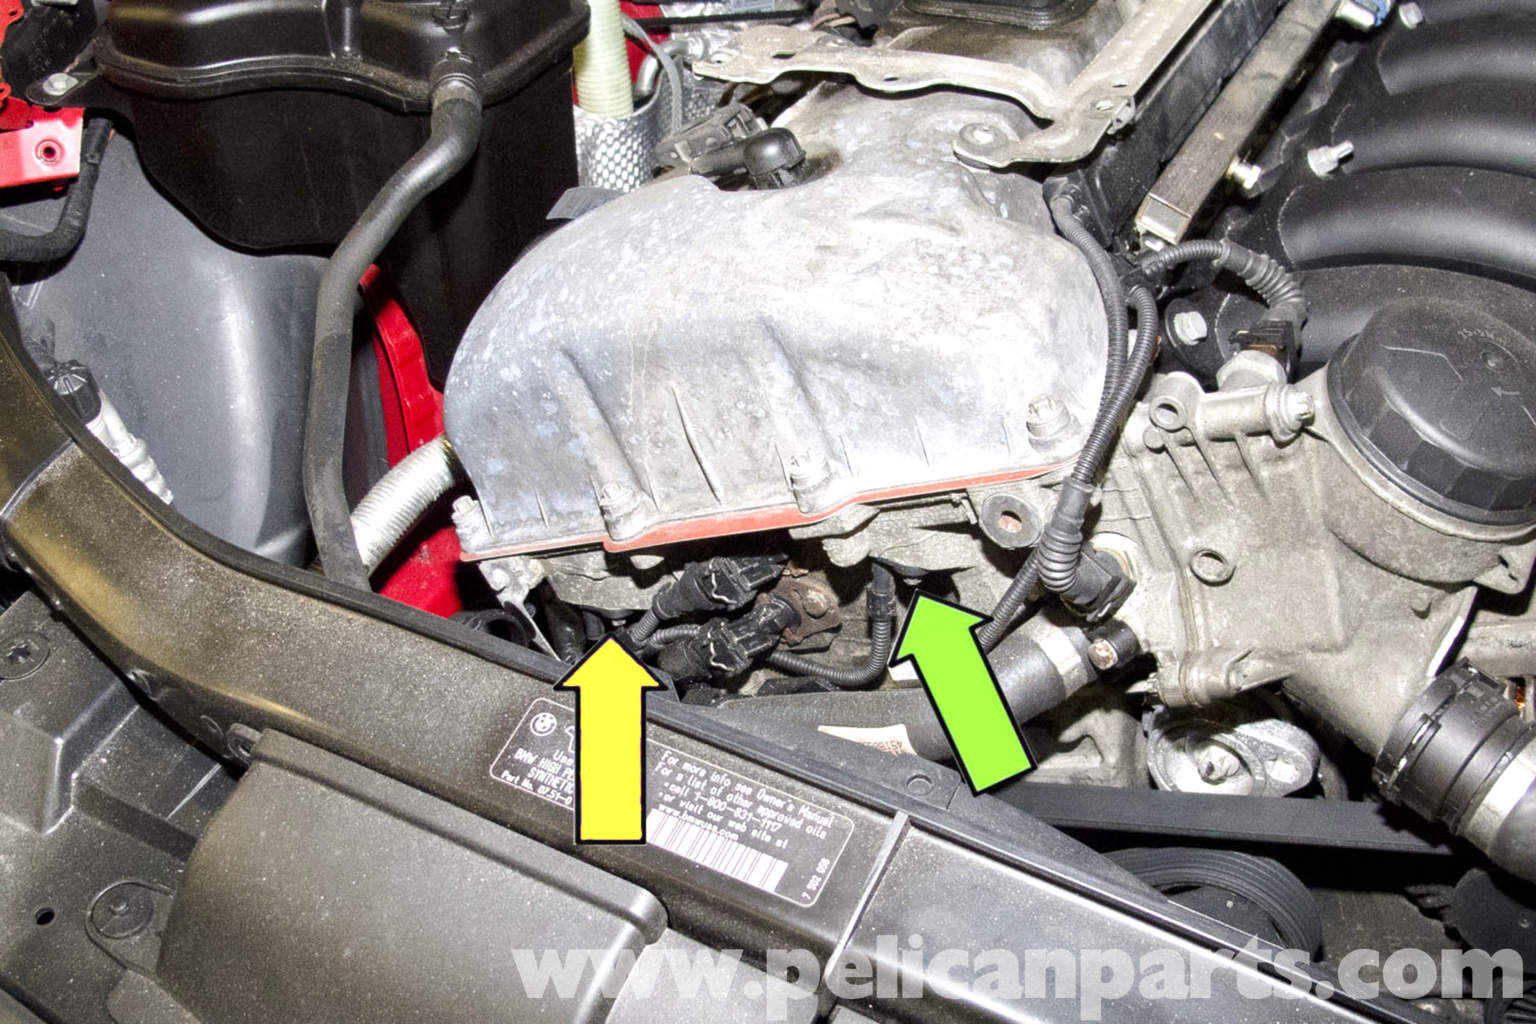 WATER Radiator Outlet Temperature Sensor Replacing in addition FUEL VANOS Solenoid Replacing likewise Cooling System Water Hoses as well 2003 Audi A4 Antenna Location besides FUEL Knock Sensor Replacement. on bmw e90 radiator replacement